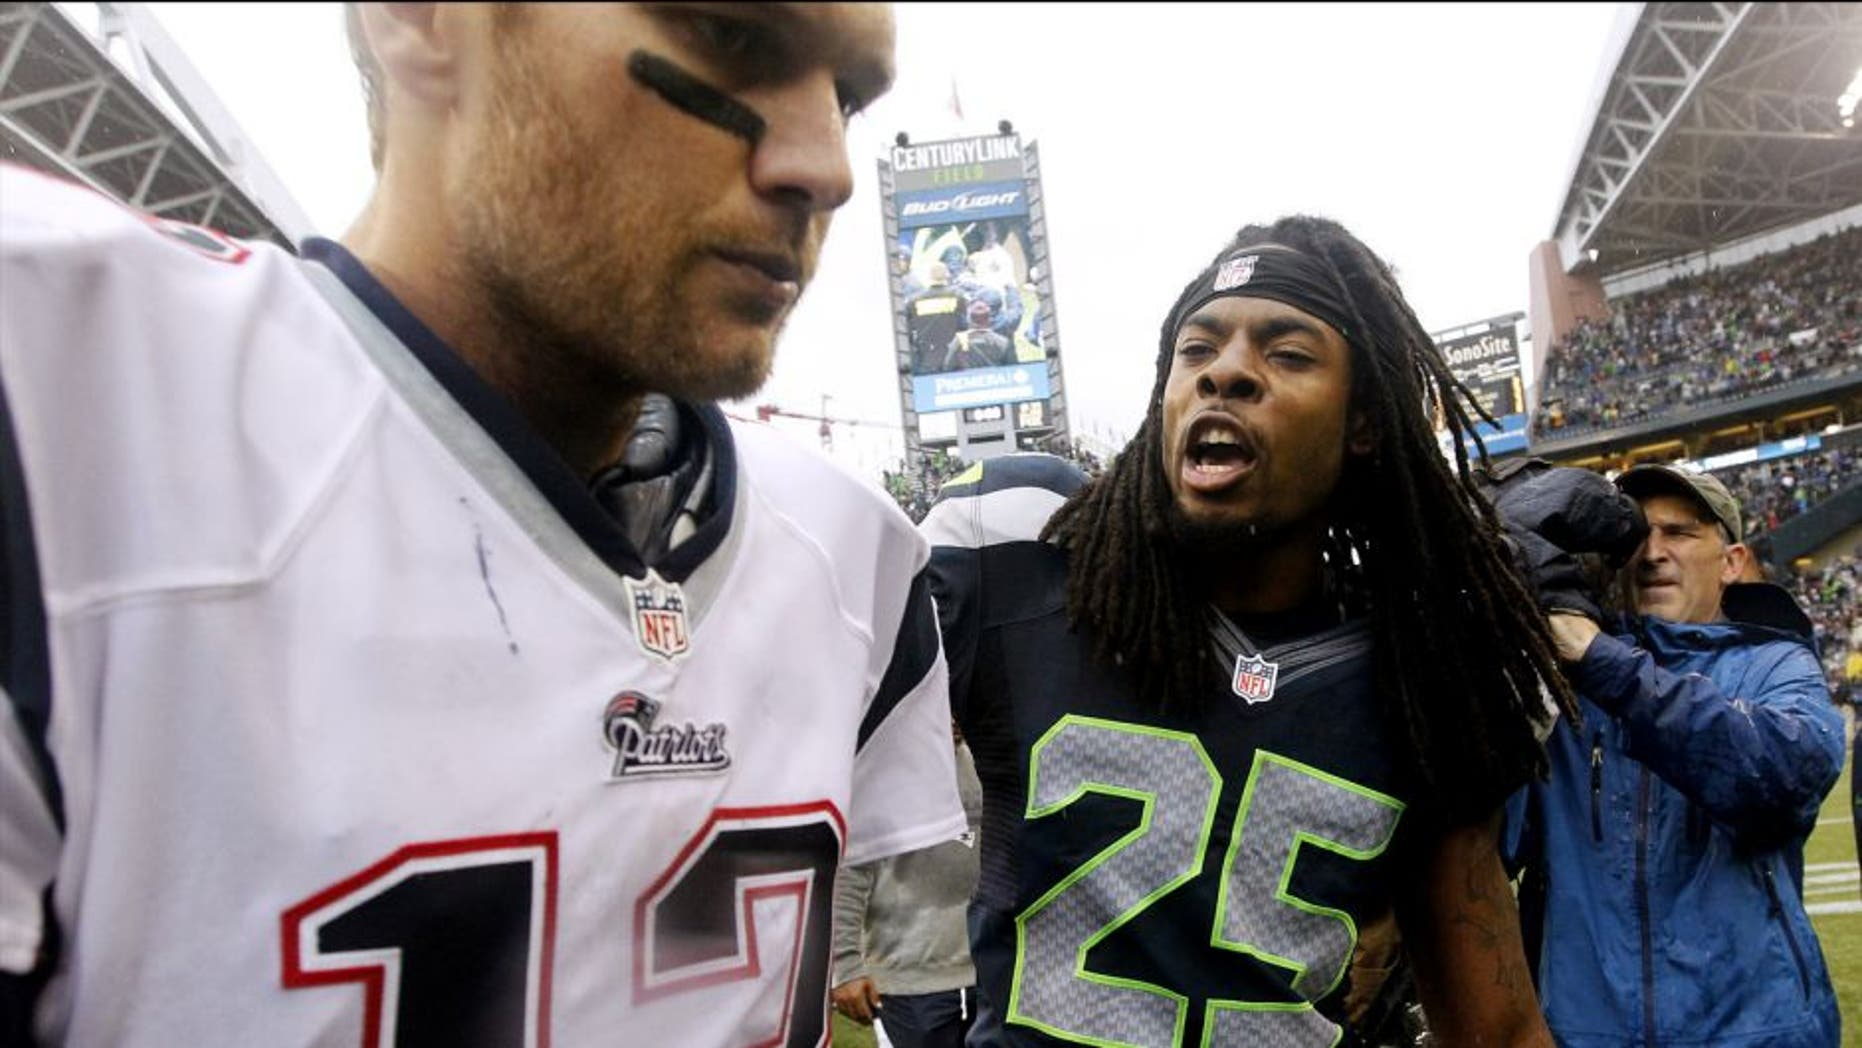 Seattle Seahawks' Richard Sherman (25) talks with New England Patriots quarterback Tom Brady after an NFL football game, Sunday, Oct. 14, 2012, in Seattle. The Seahawks won 24-23. (AP Photo/Elaine Thompson)